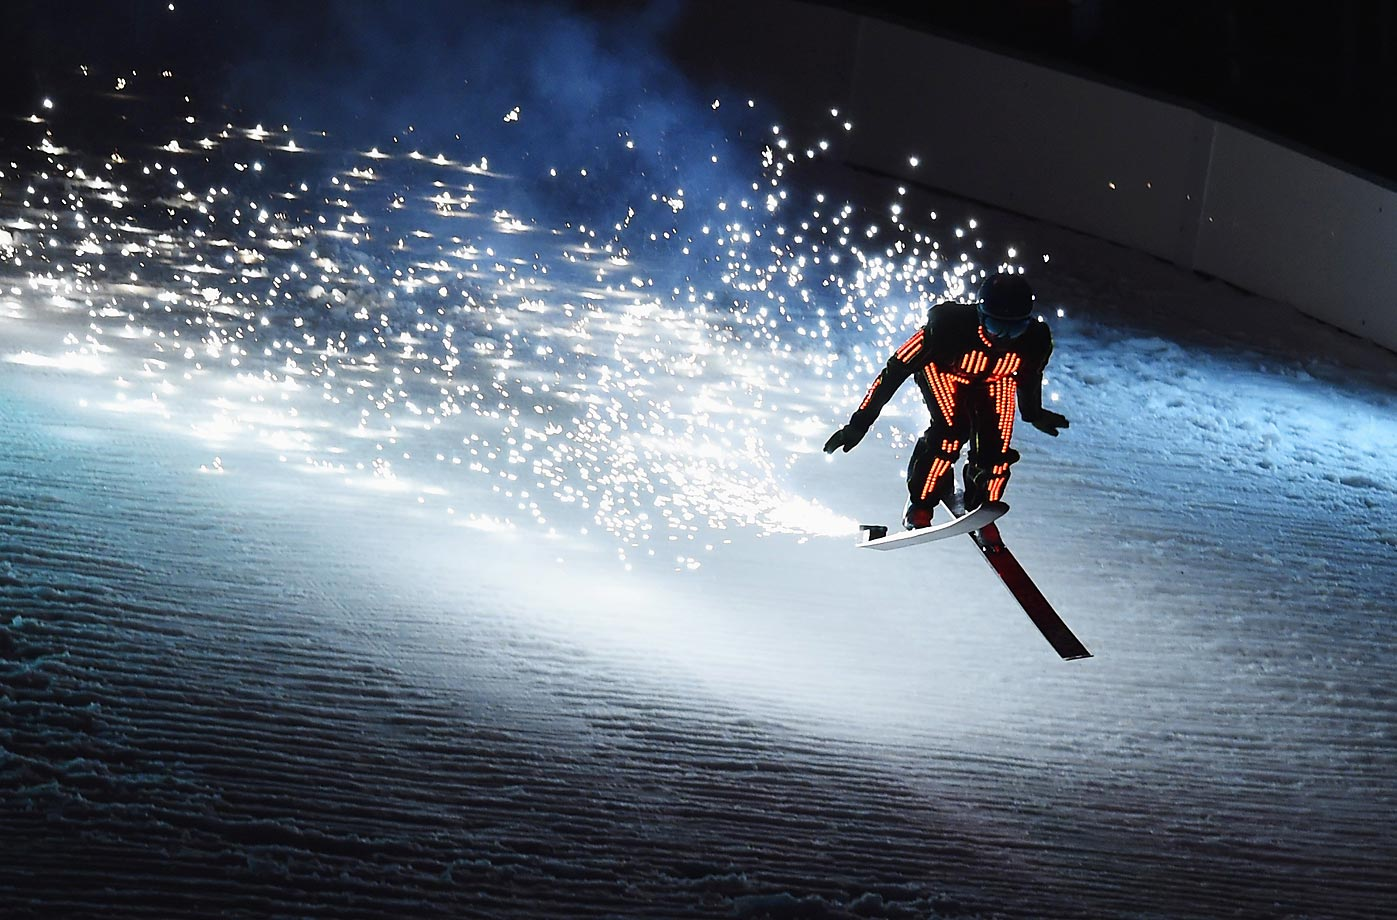 A ski jumper lands during the Opening Ceremony of the FIS Nordic World Ski Championships in Falun, Sweden.